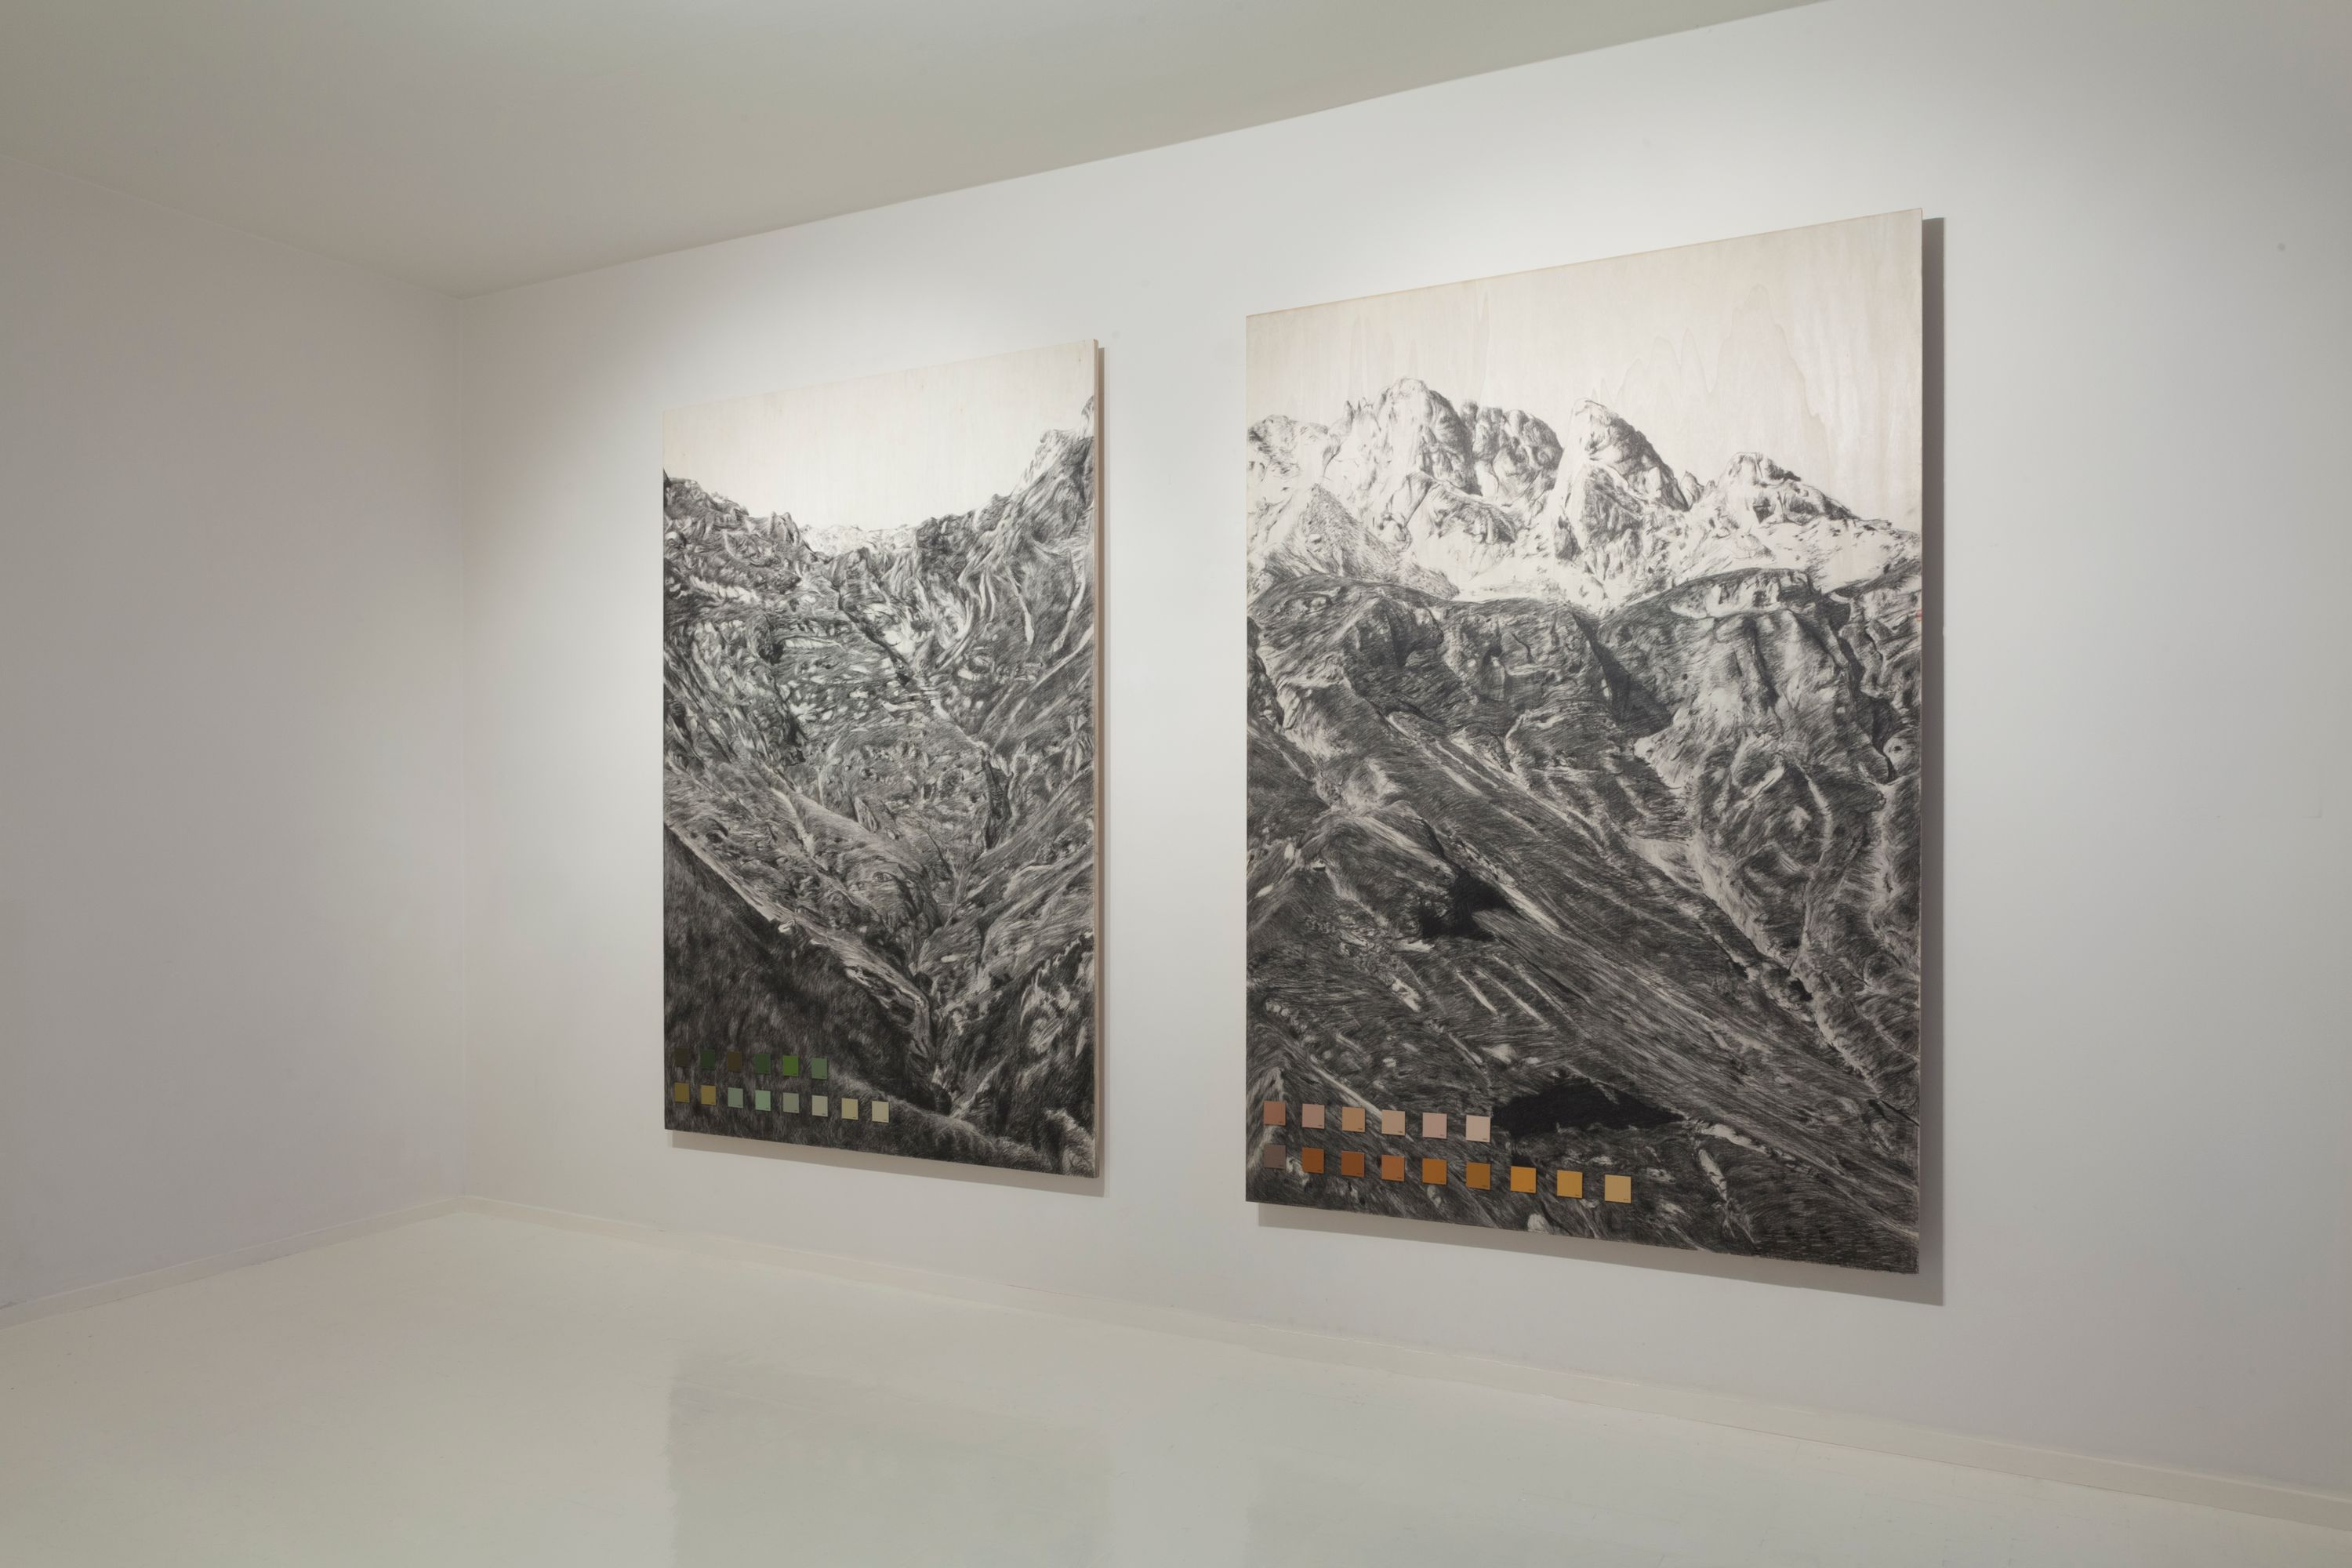 Welcome to Gransasso / 7 by Giuseppe Stampone, MLF | Marie-Laure Fleisch, Brussels (2 of 4)